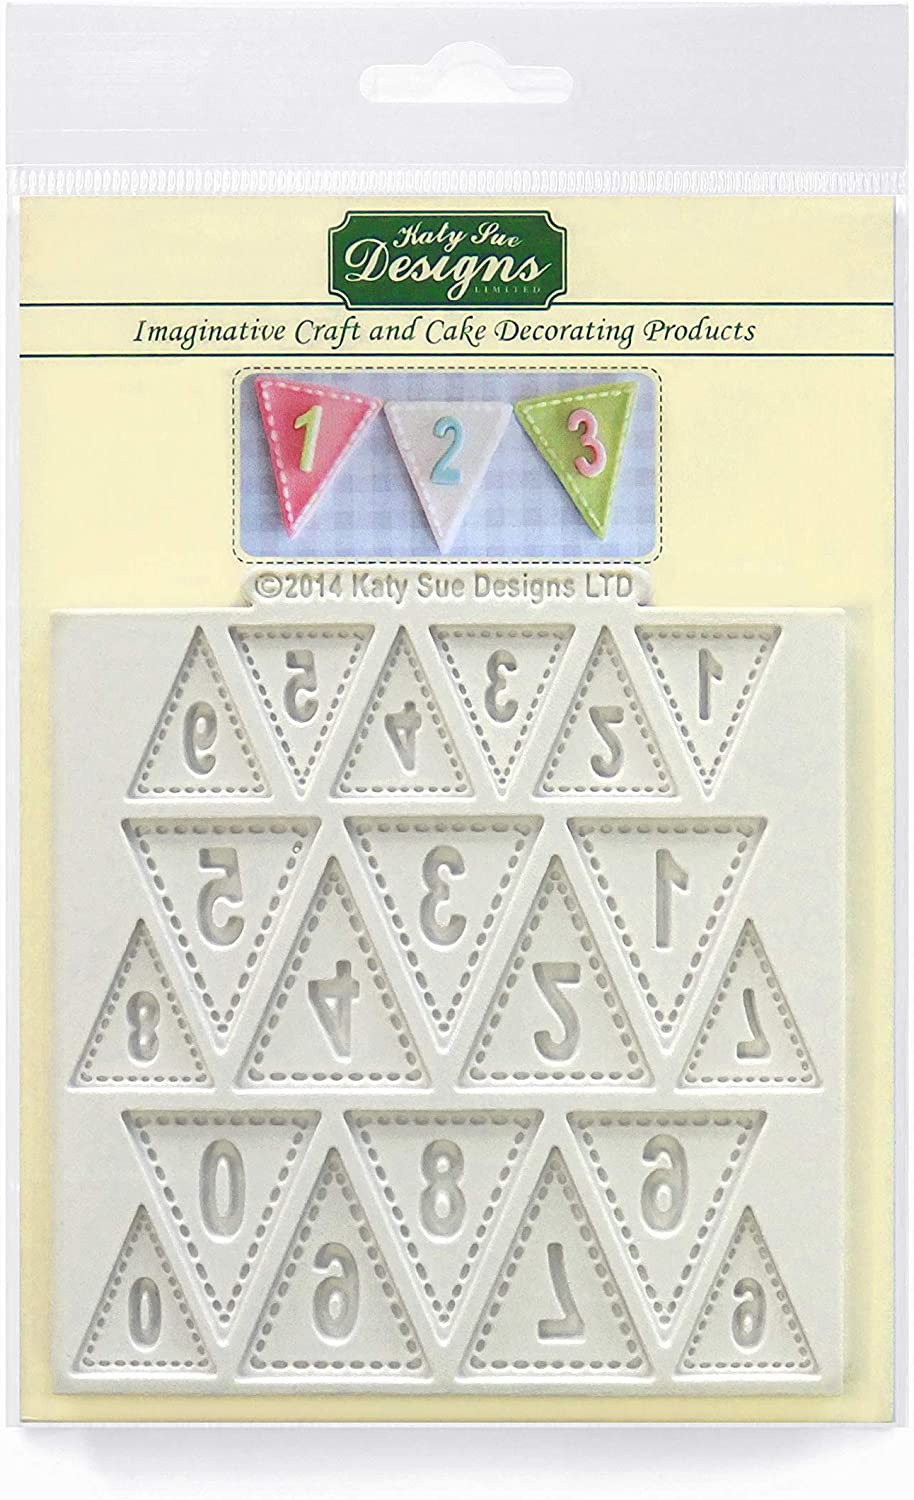 Katy Sue Bunting Numbers Silicone Mold for Cake Decorating, Crafts, Cupcakes, Sugarcraft, Cookies, Candies, Cards and Clay, Food Safe Approved, Made in The UK